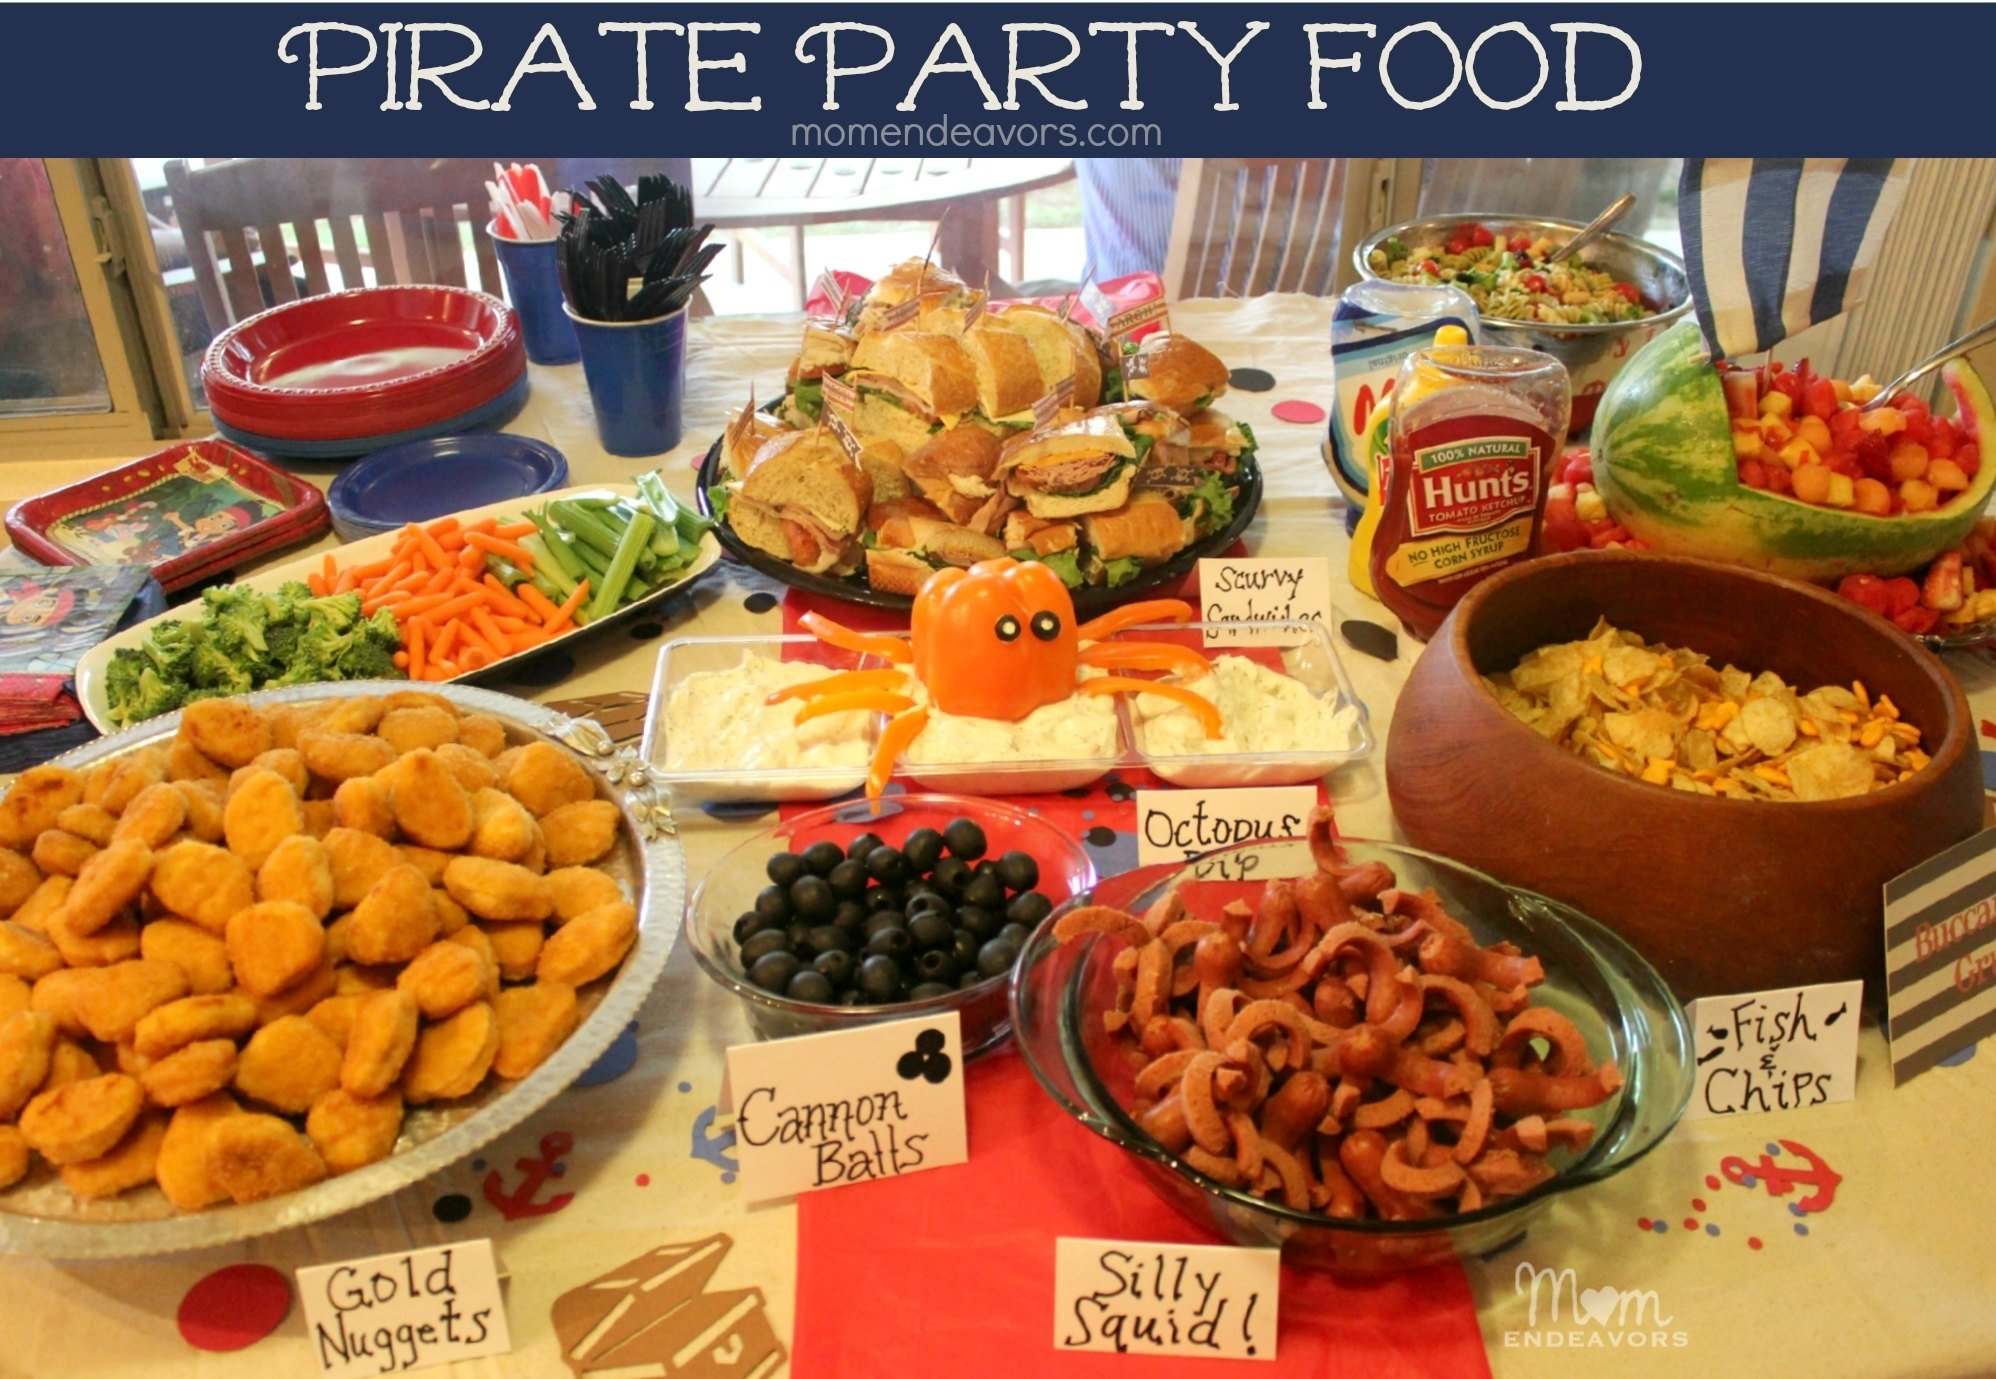 10 Unique Ideas For Jake And The Neverland Pirates Party jake and the never land pirates birthday party food 11 2021